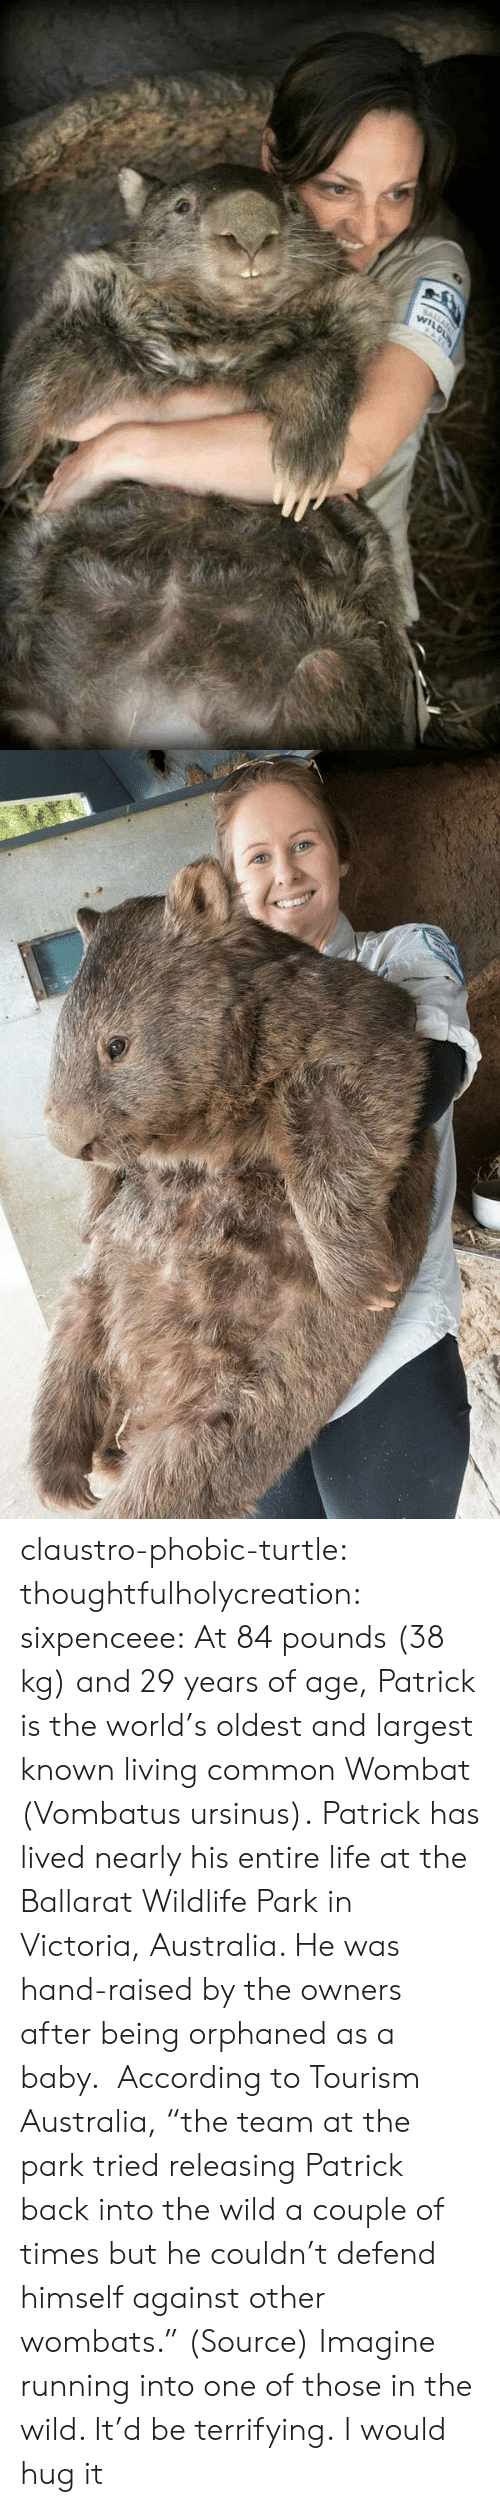 "victoria: claustro-phobic-turtle:  thoughtfulholycreation:  sixpenceee:   At 84 pounds (38 kg) and 29 years of age, Patrick is the world's oldest and largest known living common Wombat (Vombatus ursinus). Patrick has lived nearly his entire life at the Ballarat Wildlife Park in Victoria, Australia. He was hand-raised by the owners after being orphaned as a baby.  According to Tourism Australia, ""the team at the park tried releasing Patrick back into the wild a couple of times but he couldn't defend himself against other wombats."" (Source)   Imagine running into one of those in the wild. It'd be terrifying.   I would hug it"